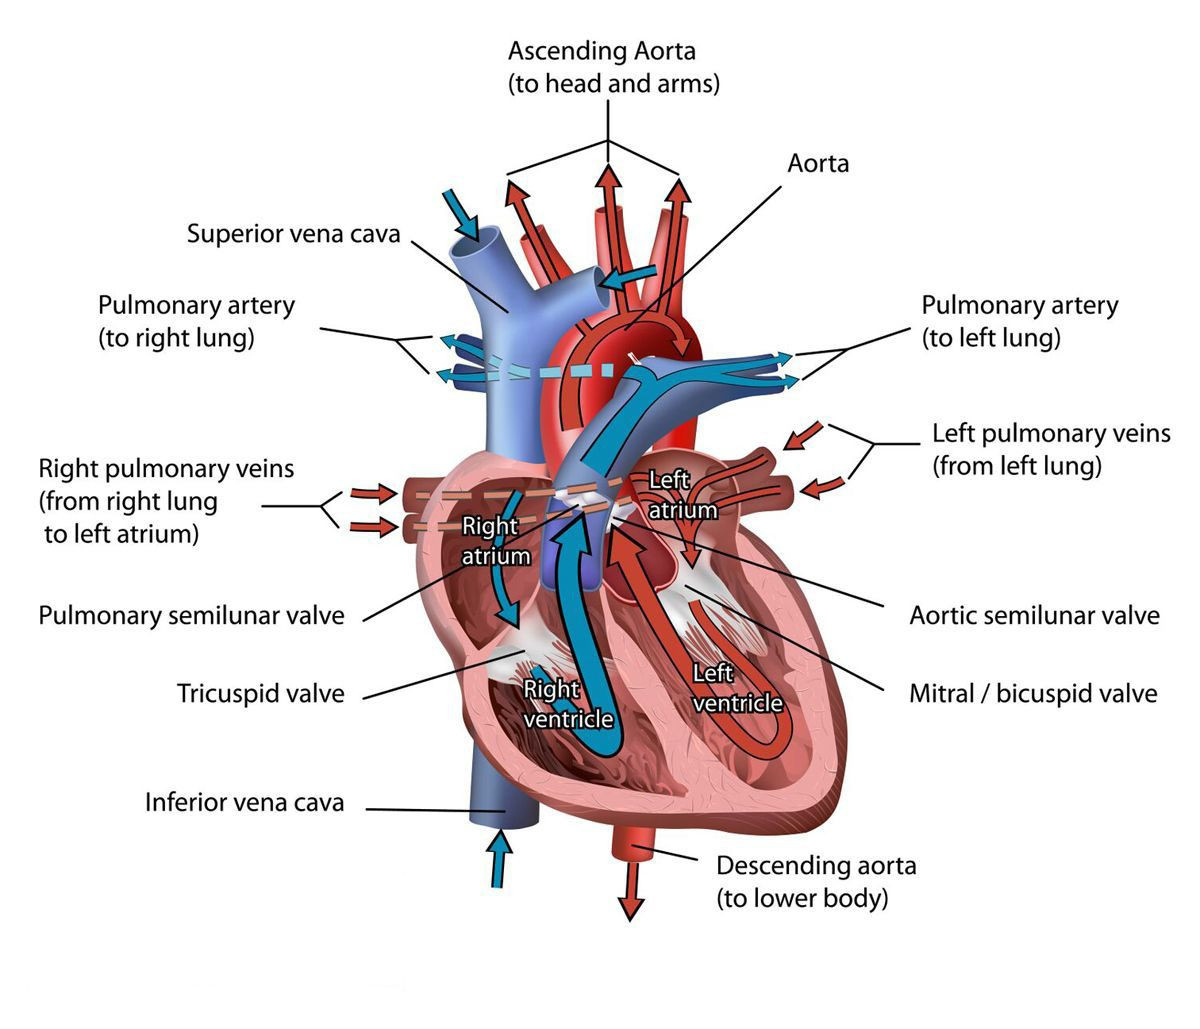 Printable Heart Diagram the Heart Of the Matter